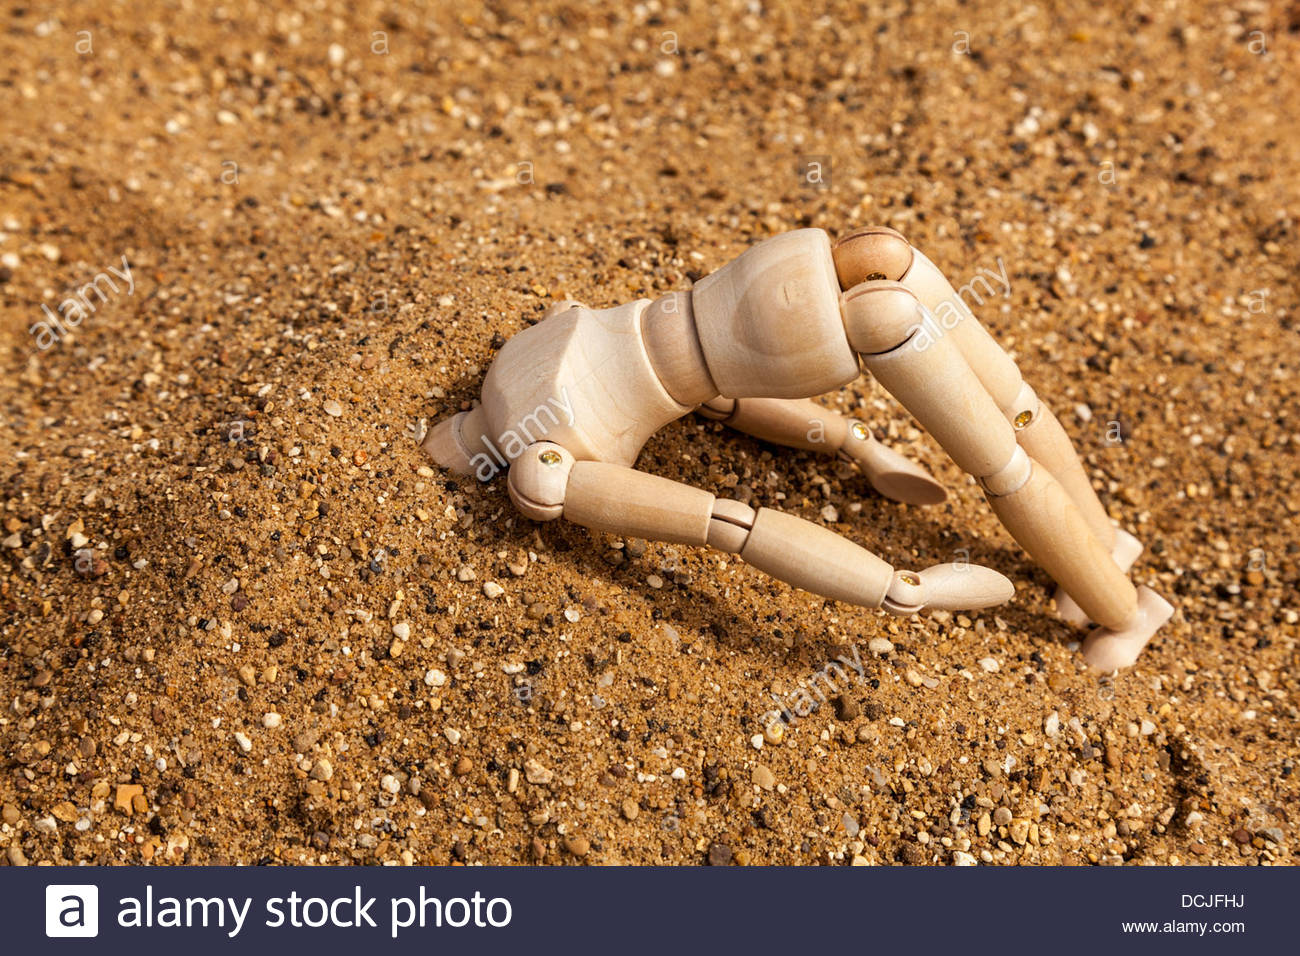 Denial - Mannequin with head buried in the sand Stock Photo